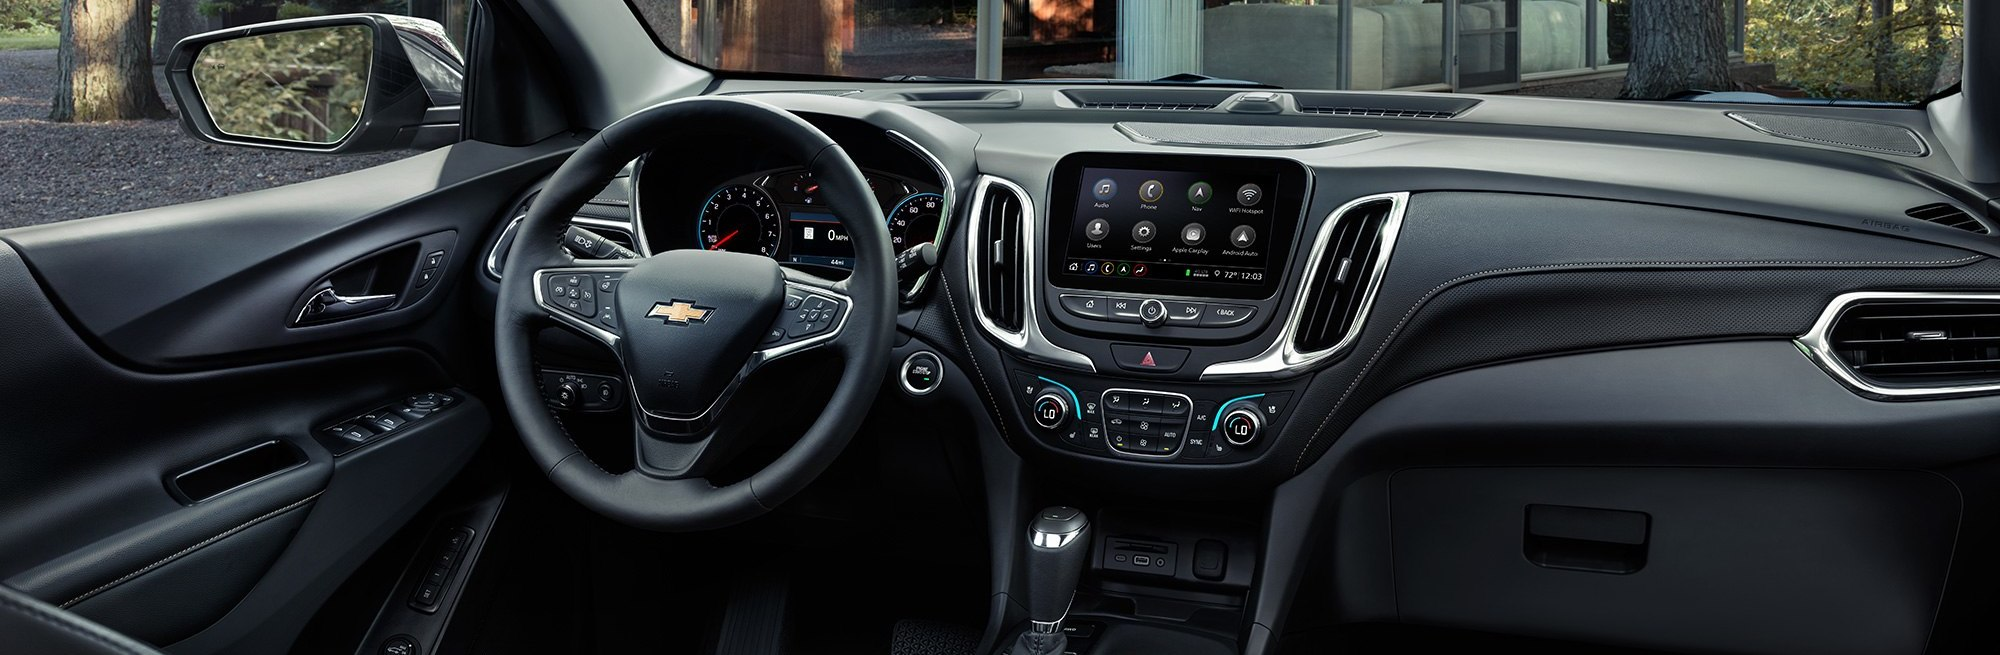 2020 Chevrolet Equinox Dashboard